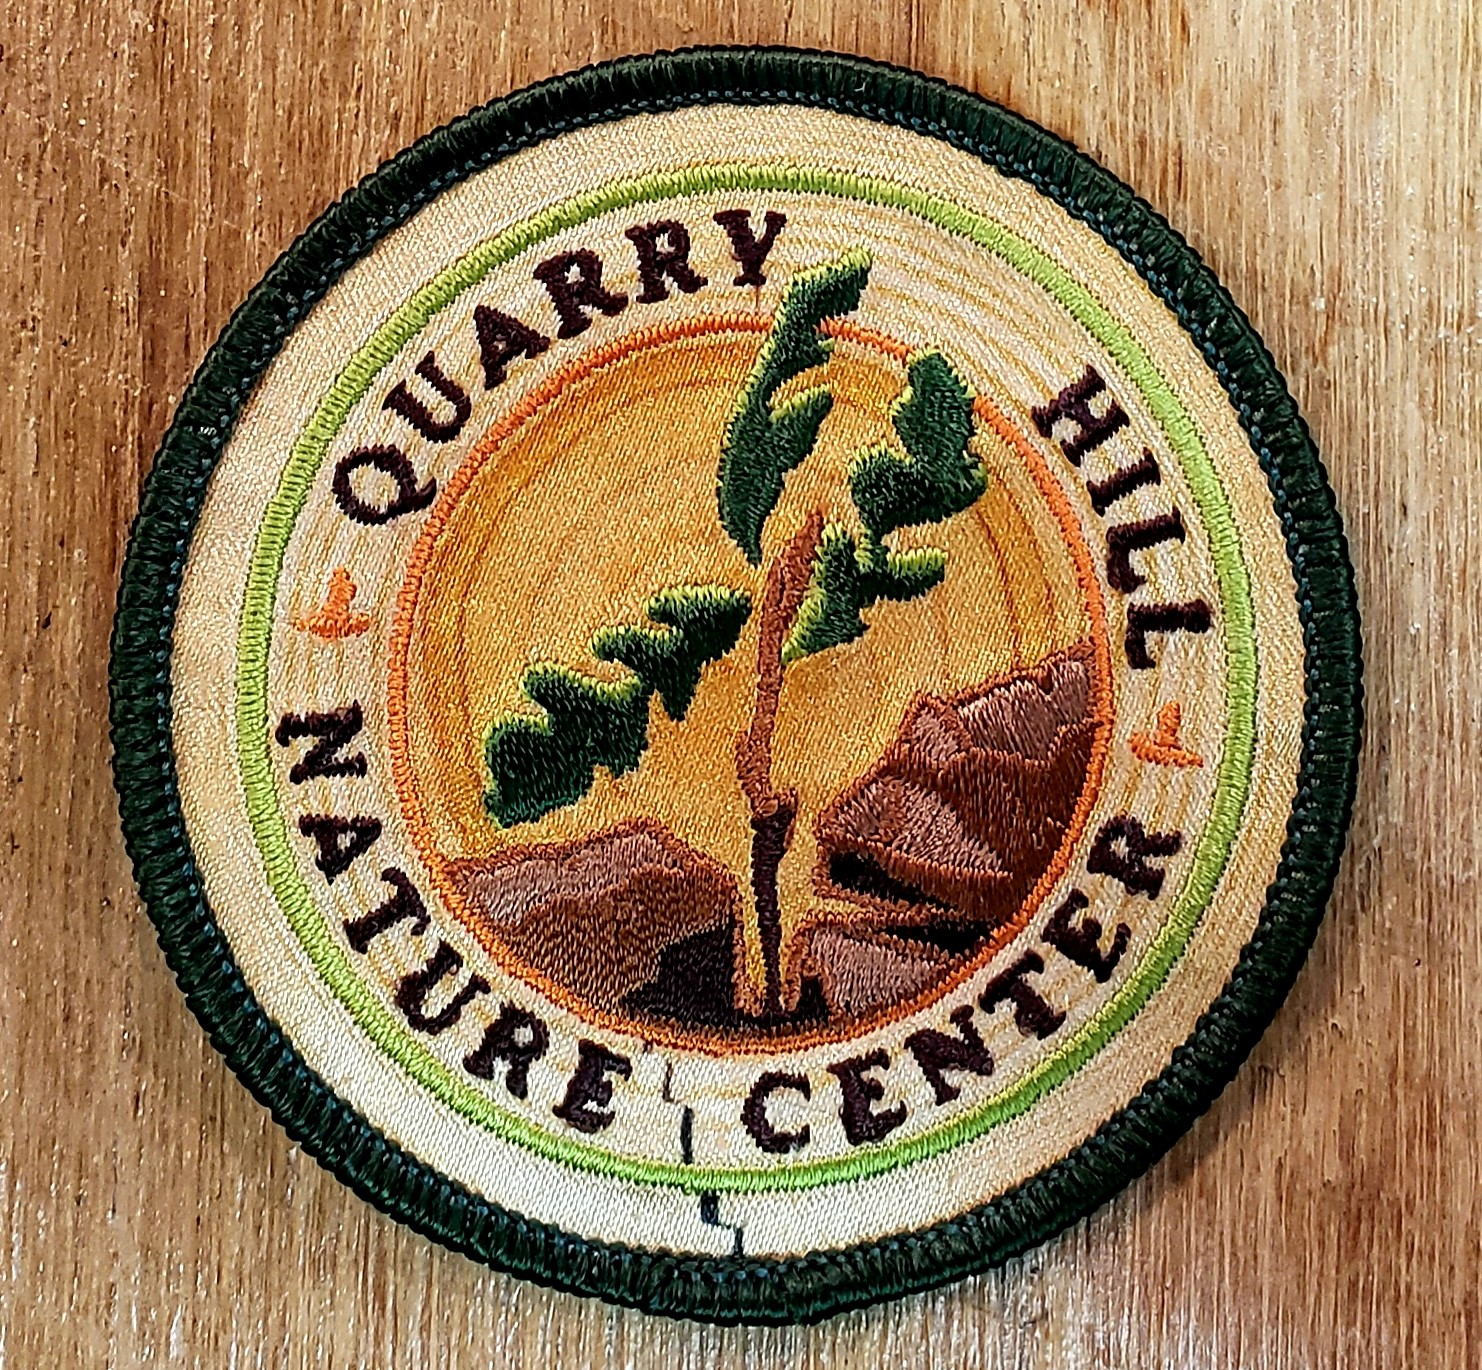 A Quarry Hill Souvenir Patch For The Birthday Child Purchase Patches Party Favors